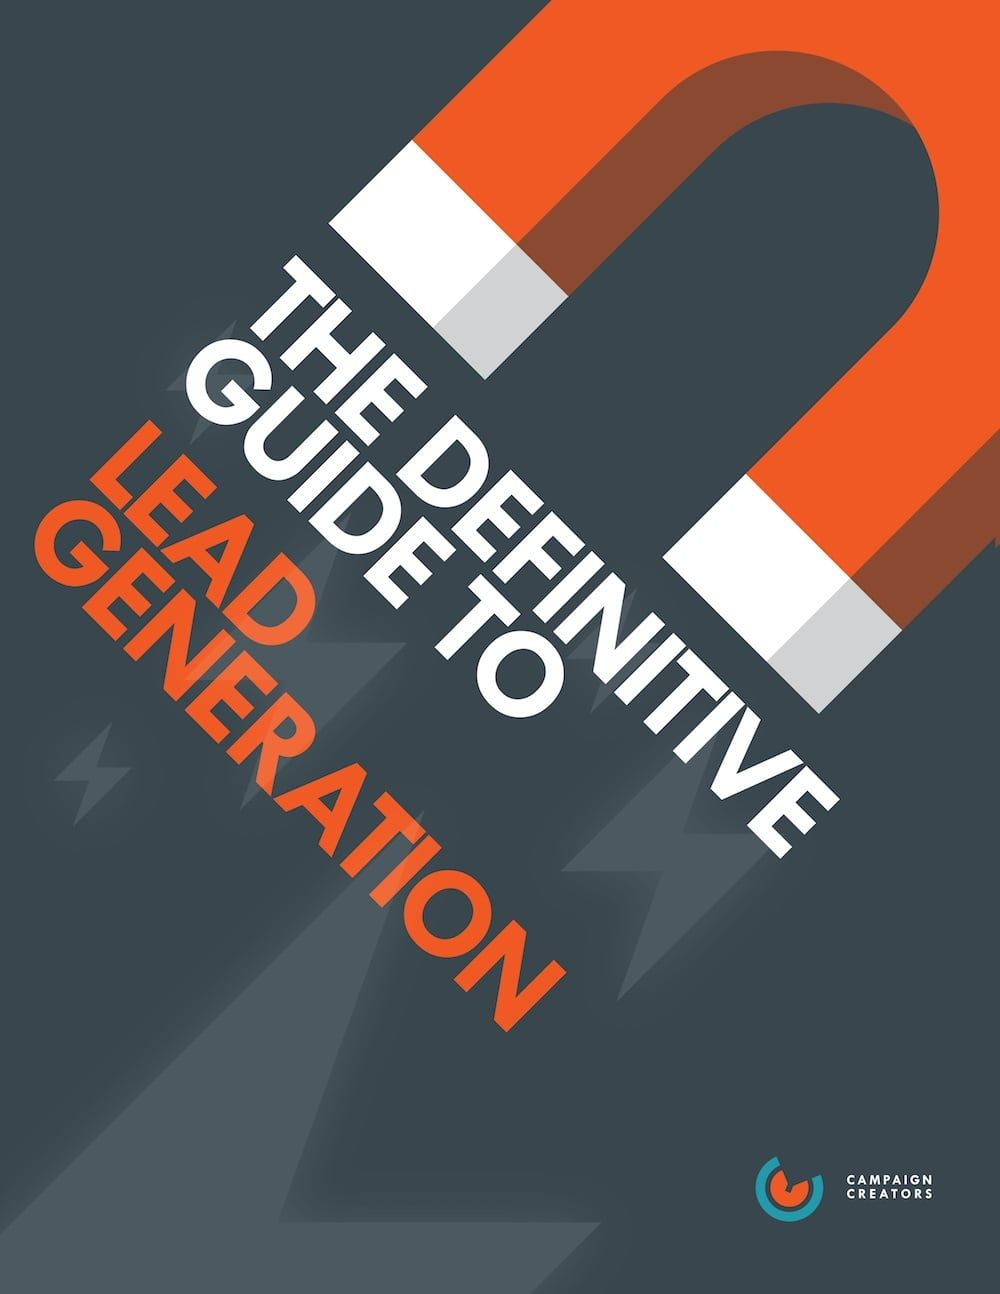 definitive-guide-lead-generation.jpg